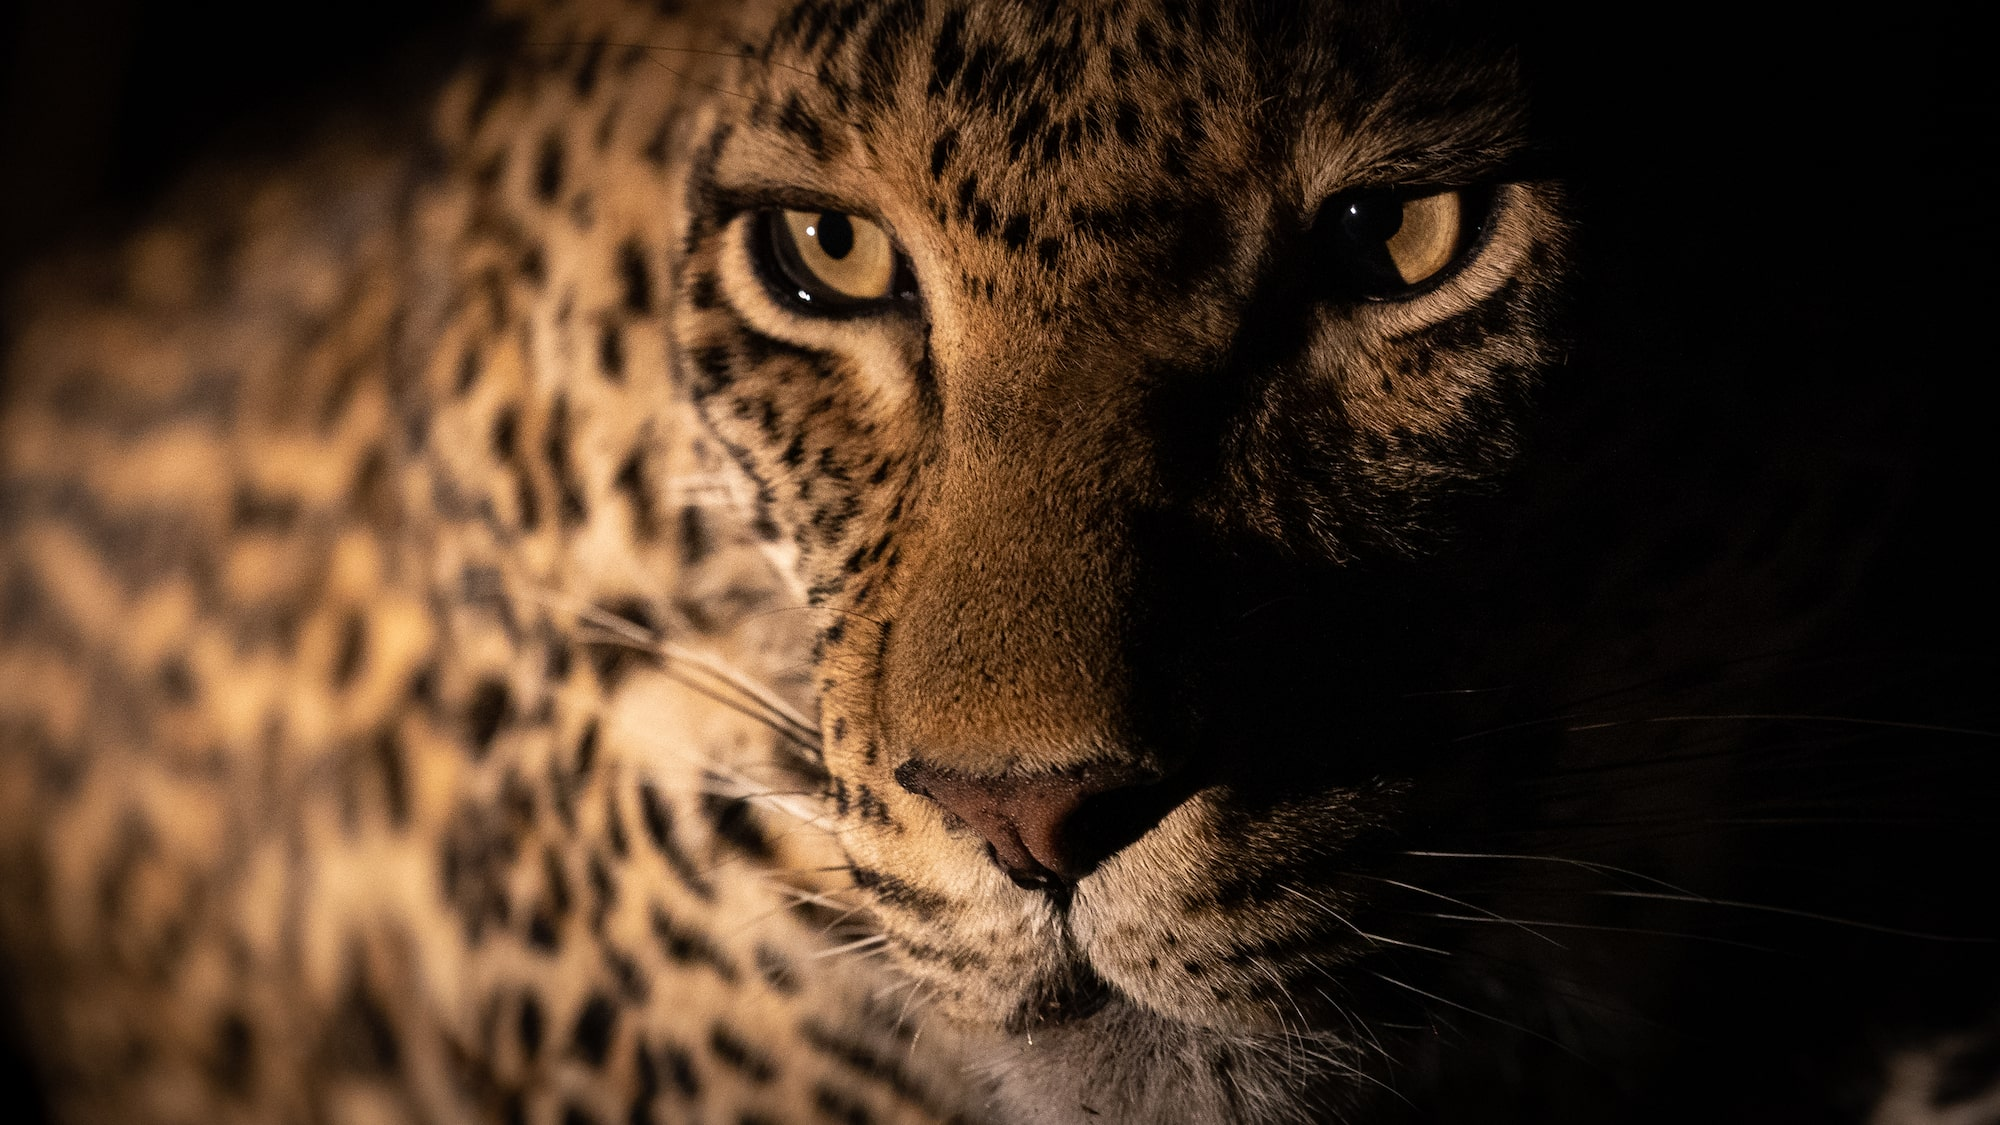 Leopard in the safari at night